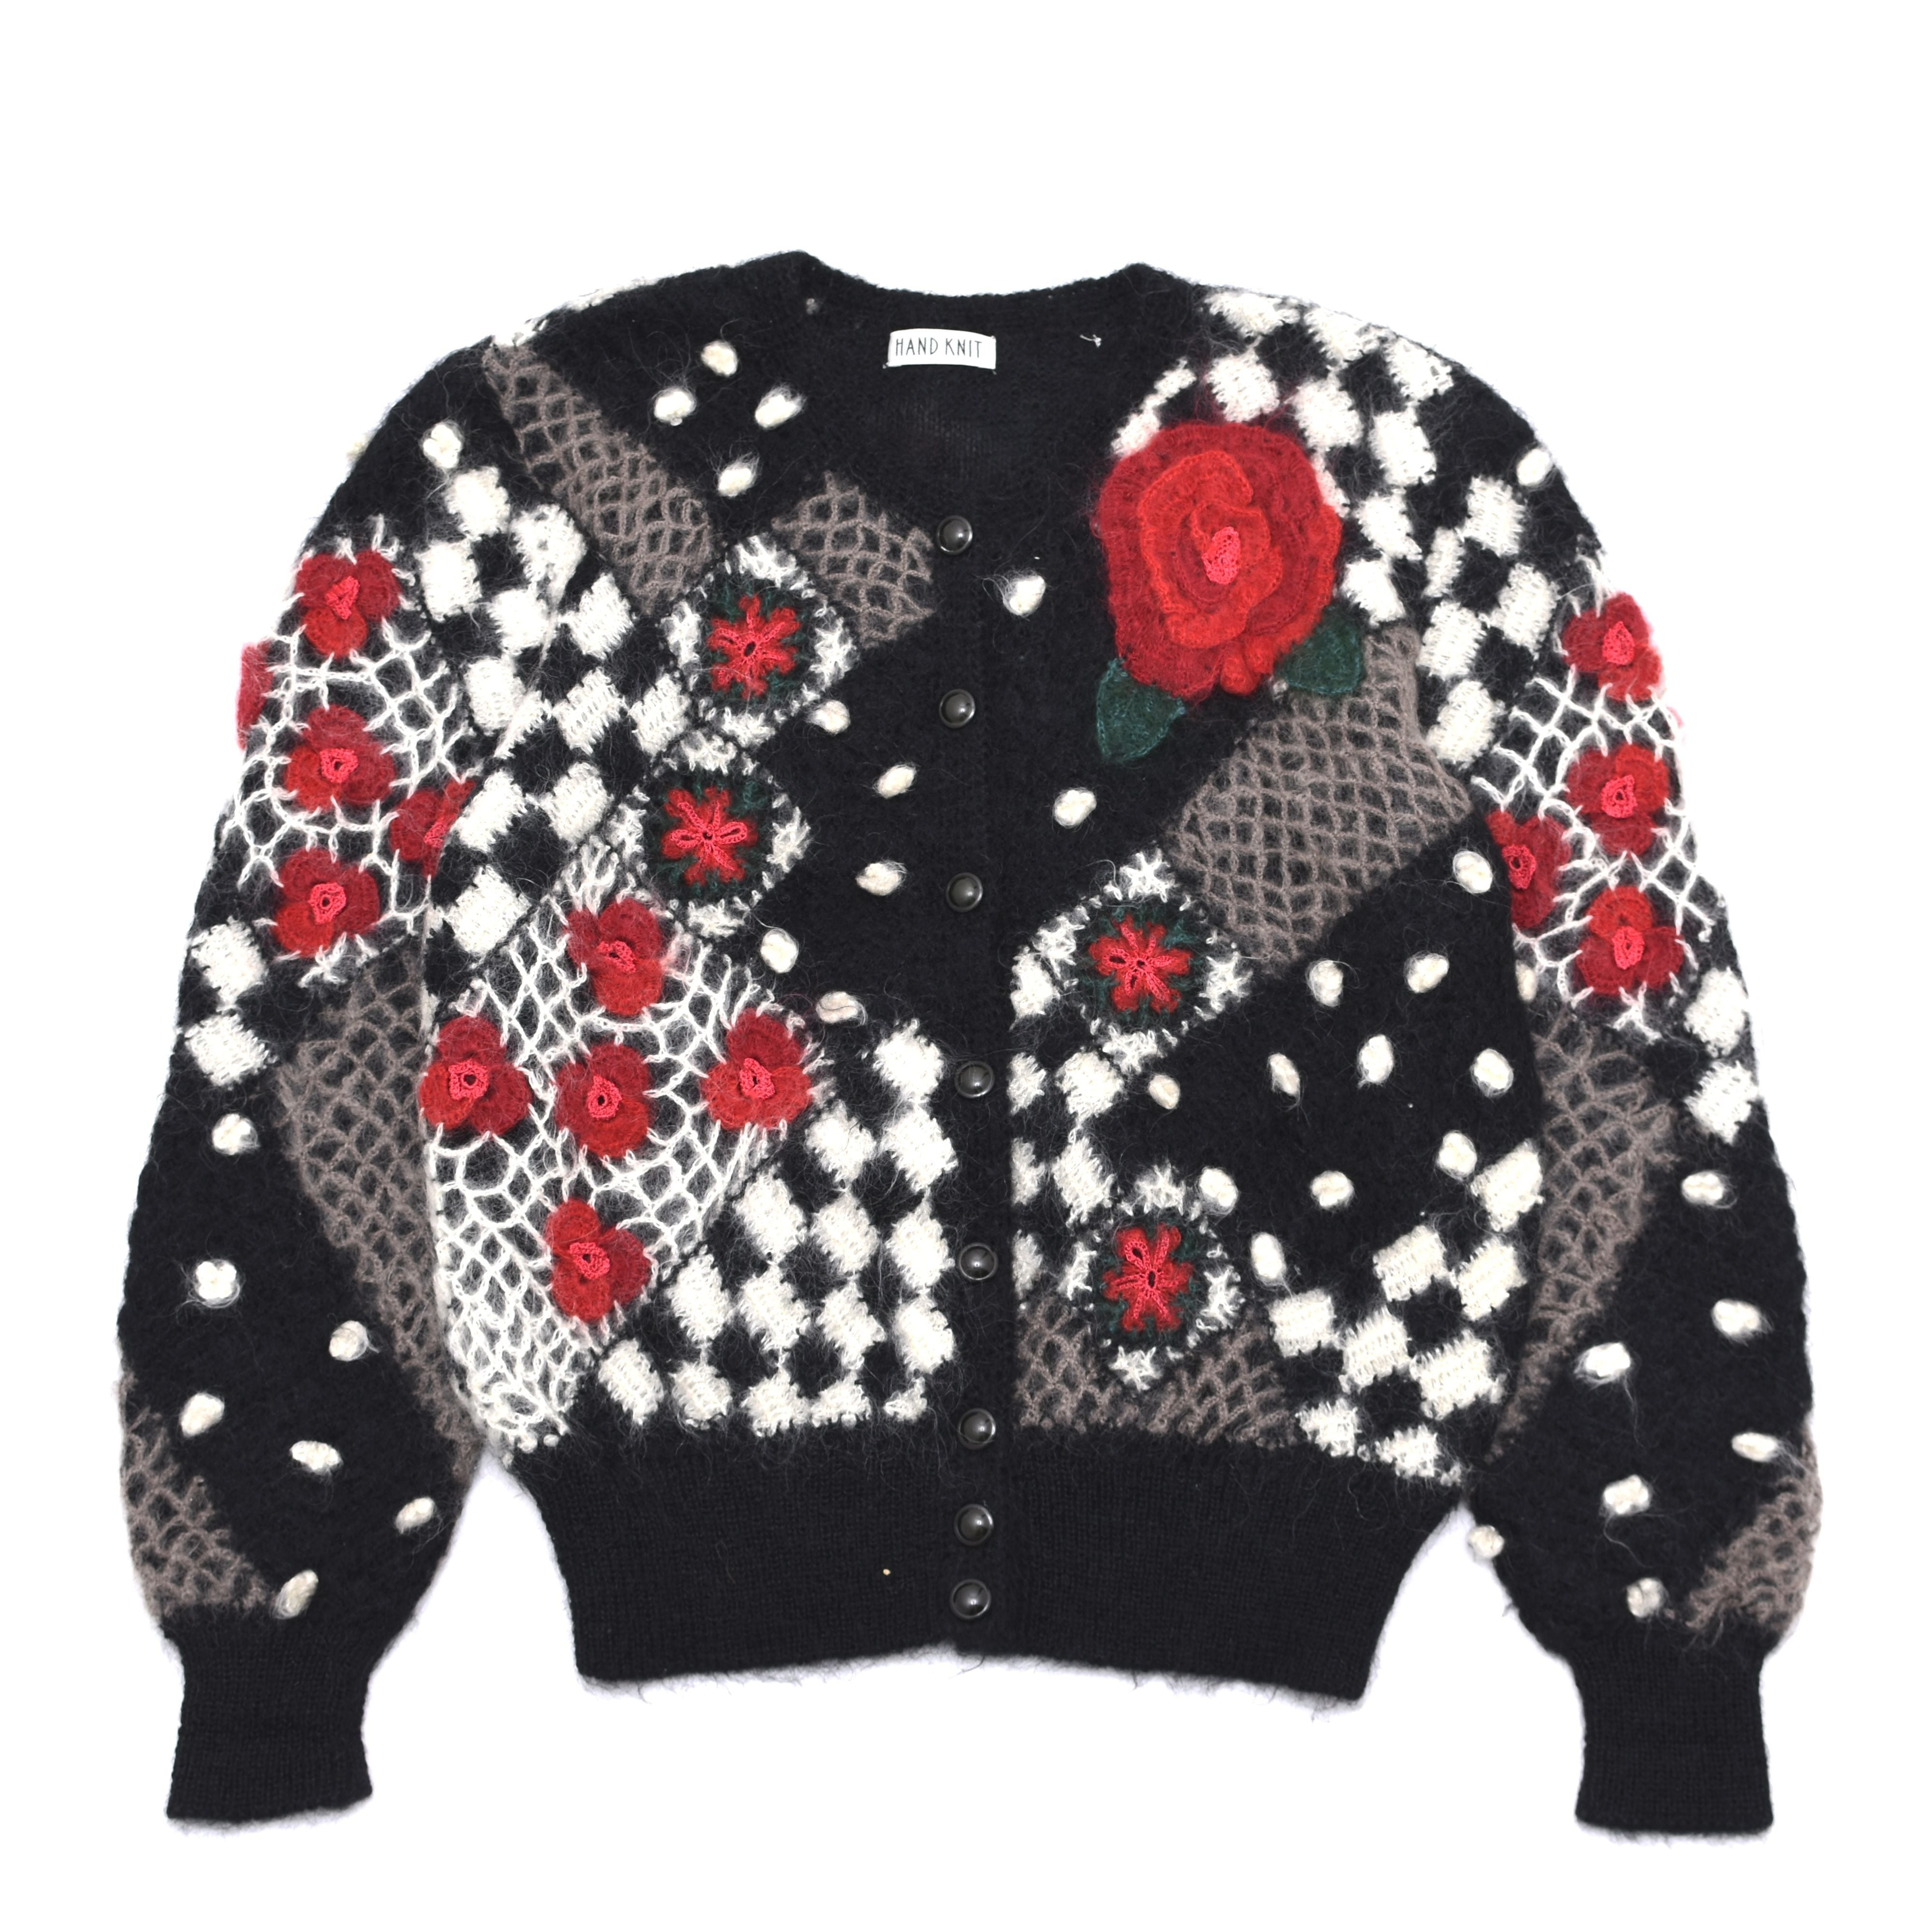 Hand made patchwork 3D knit cardigan